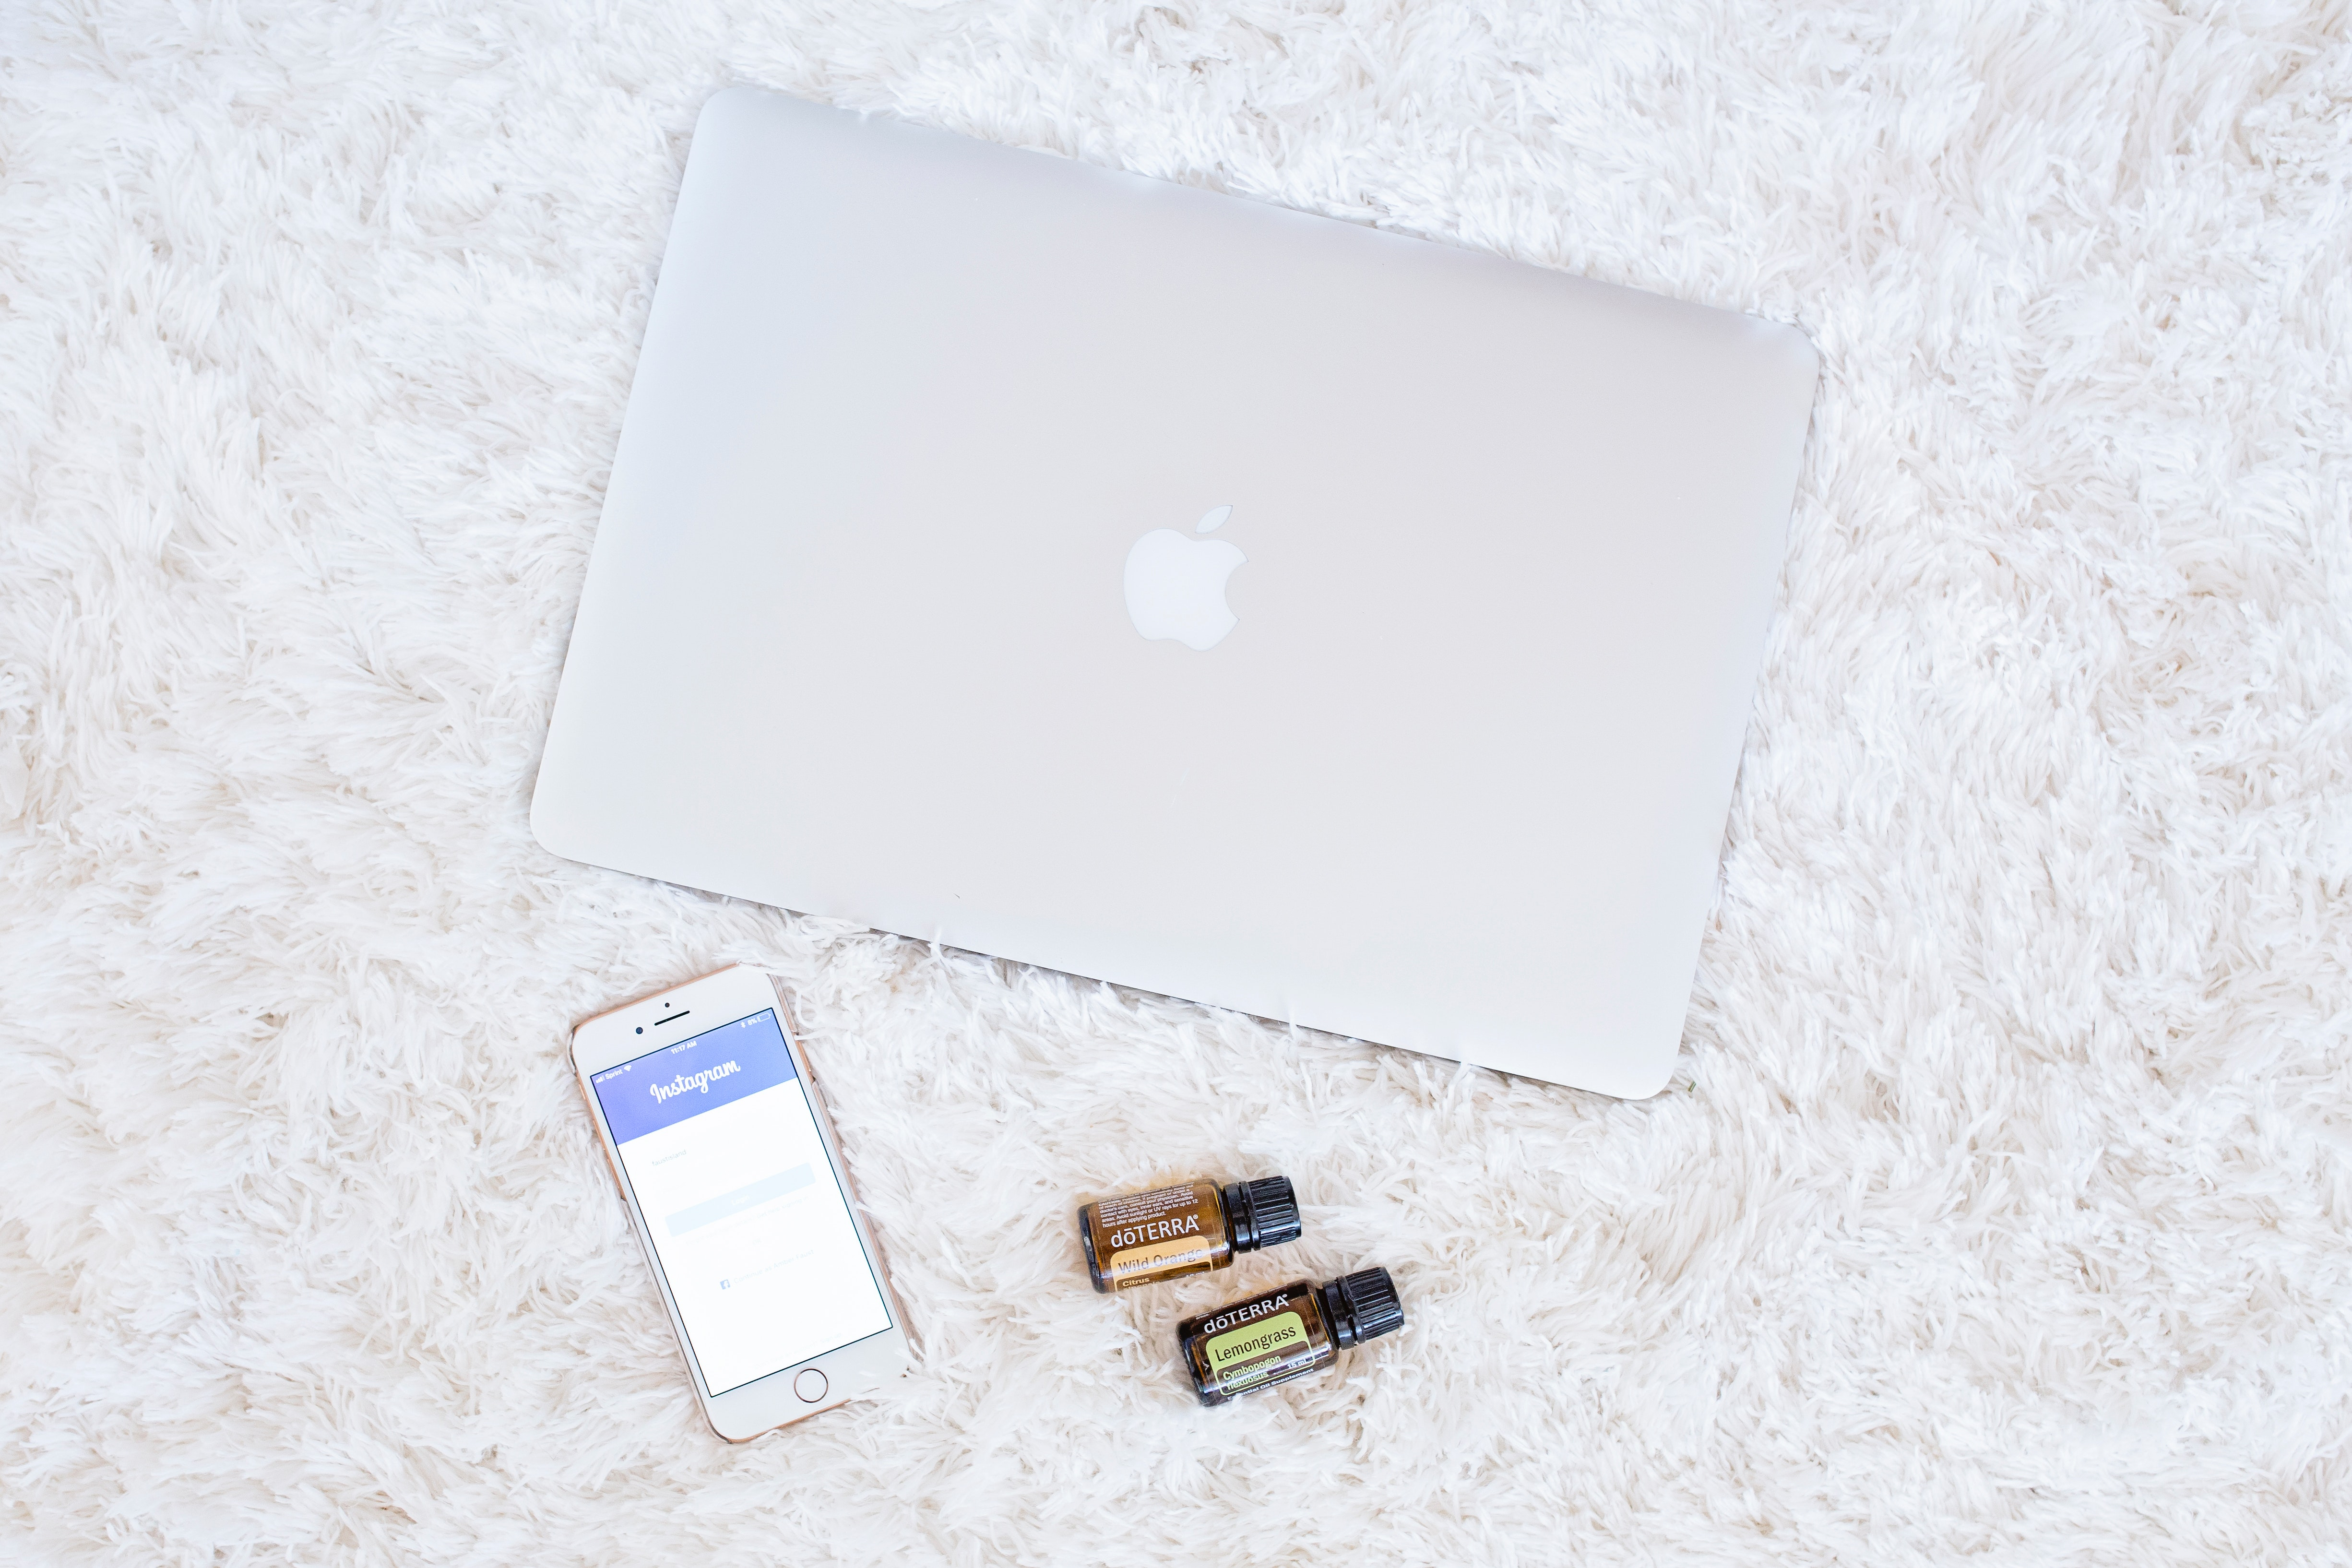 Flat Lay Photography of Apple Devices, Apple devices, Top view, Technology, Smartphone, HQ Photo